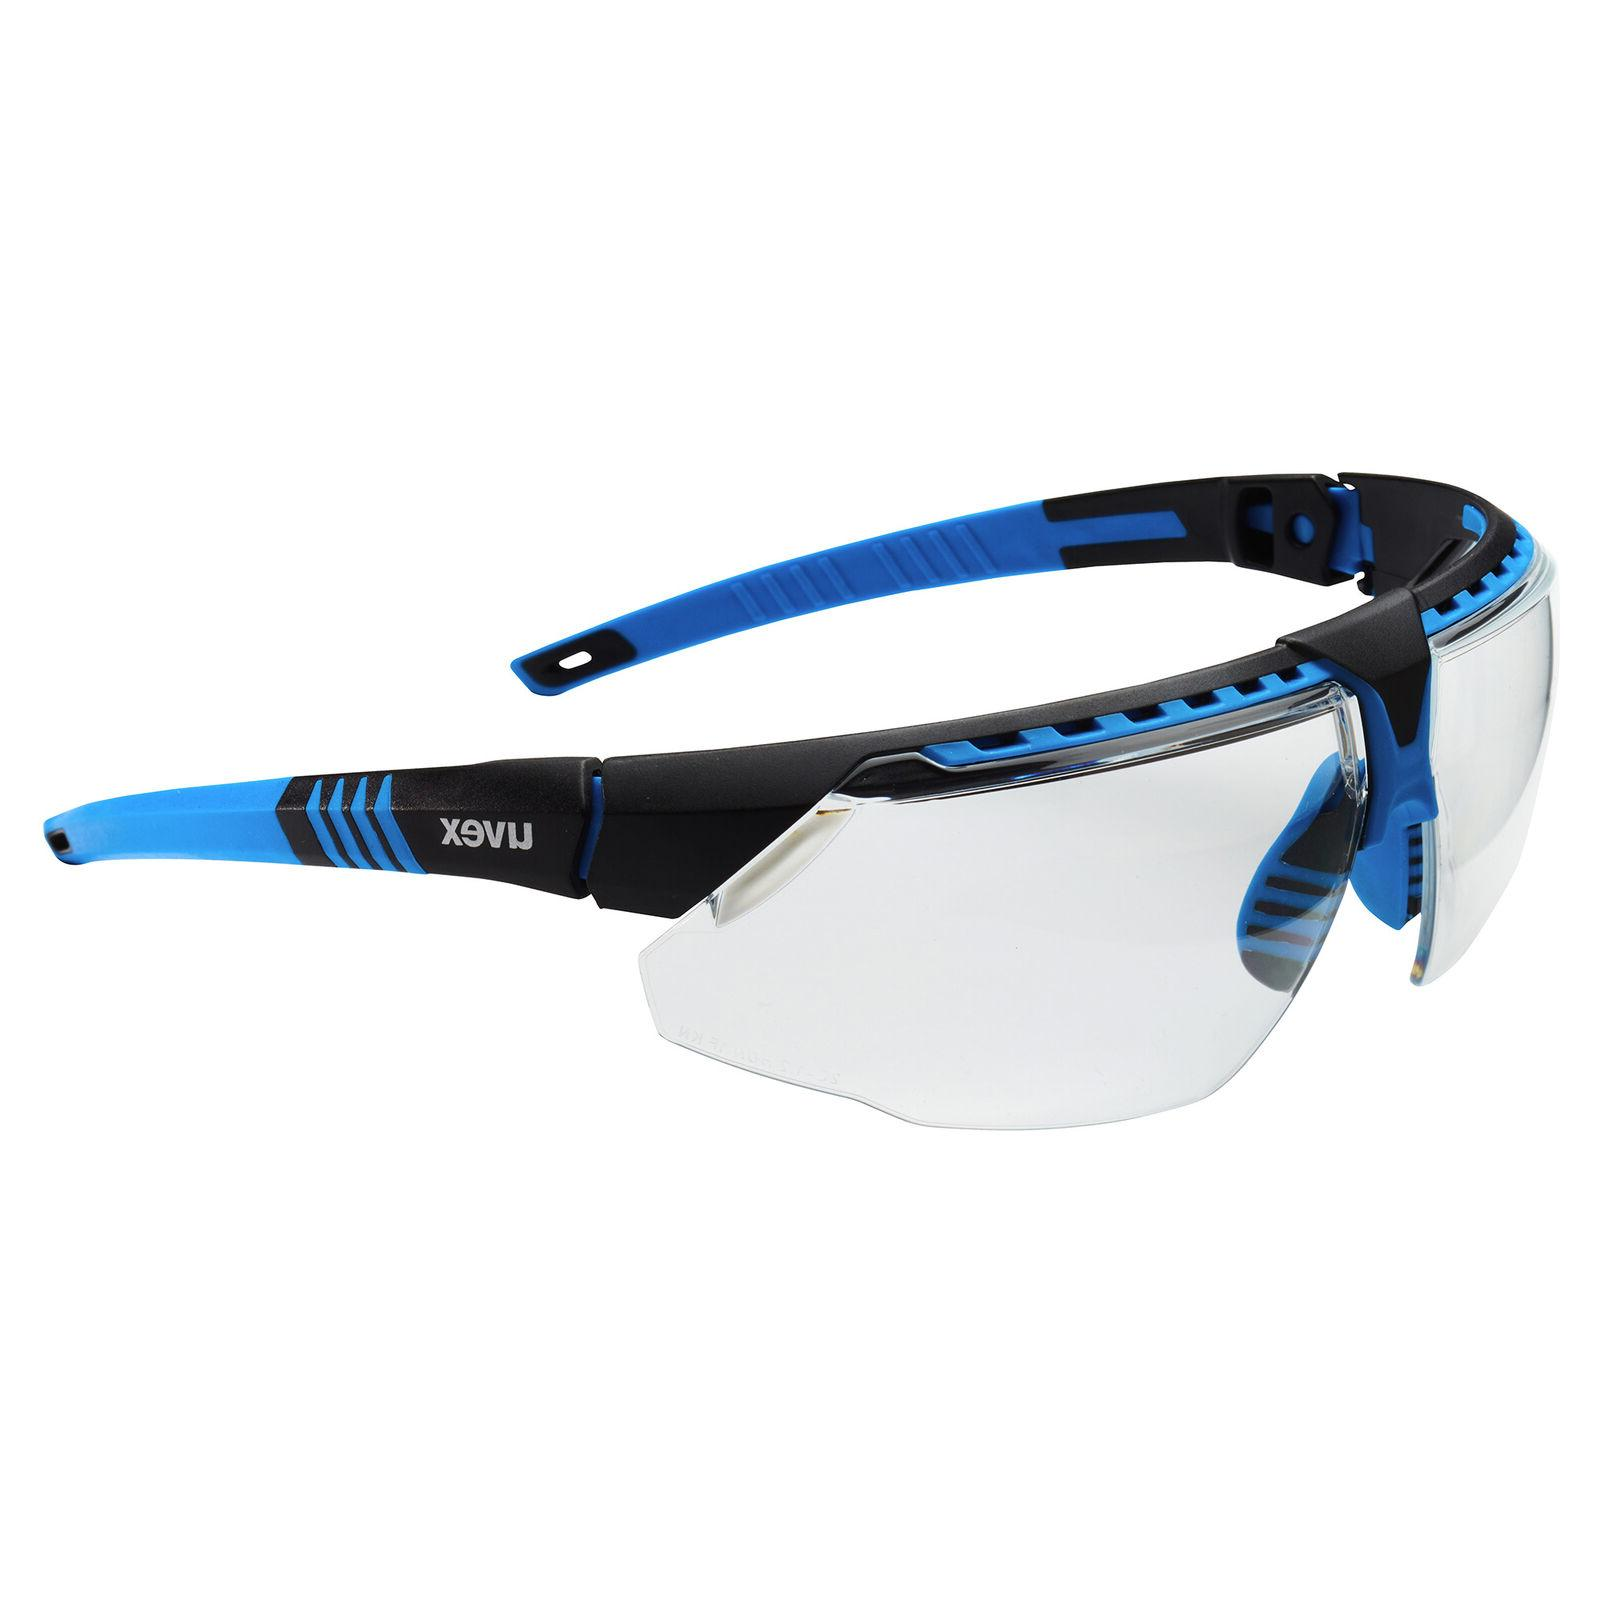 Uvex Avatar Safety Glasses with Clear Lens, Blue Frame